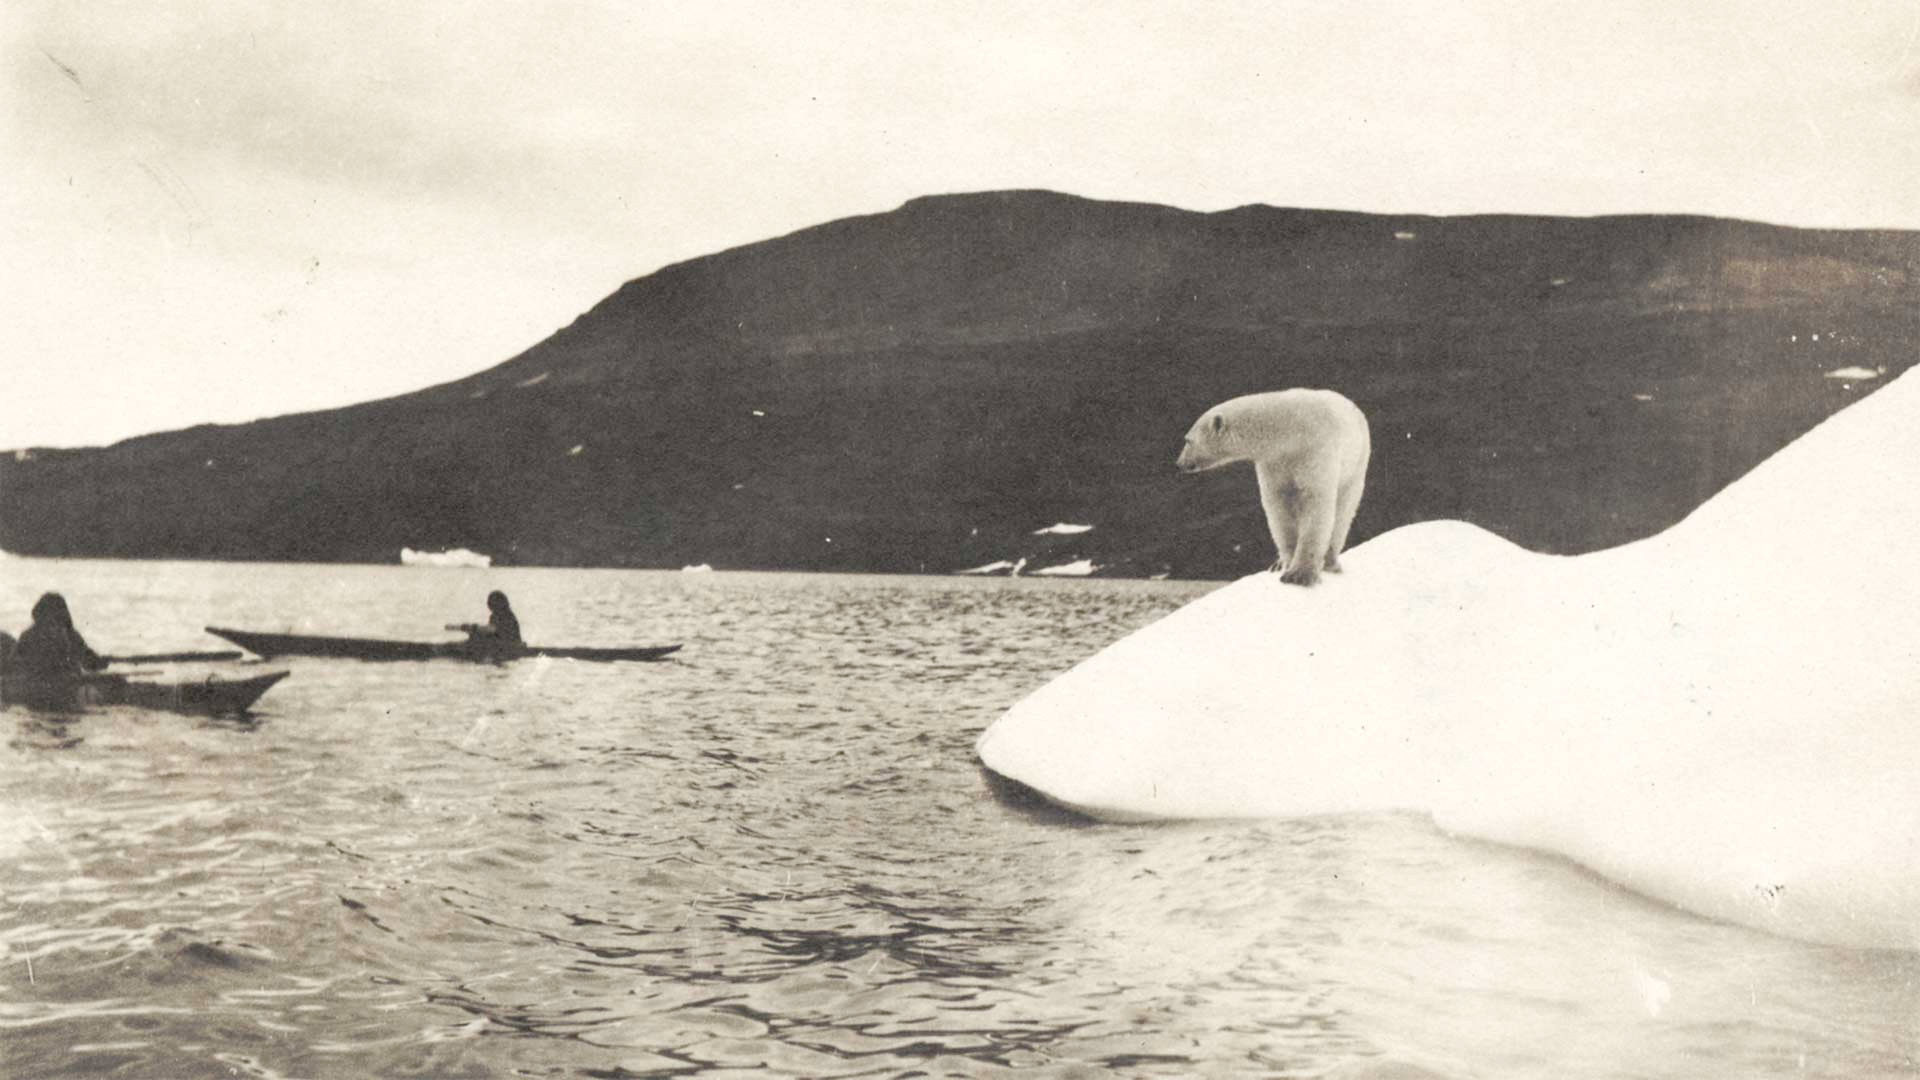 Vintage photo of a polar bear on a piece of ice looking at two people in long canoes